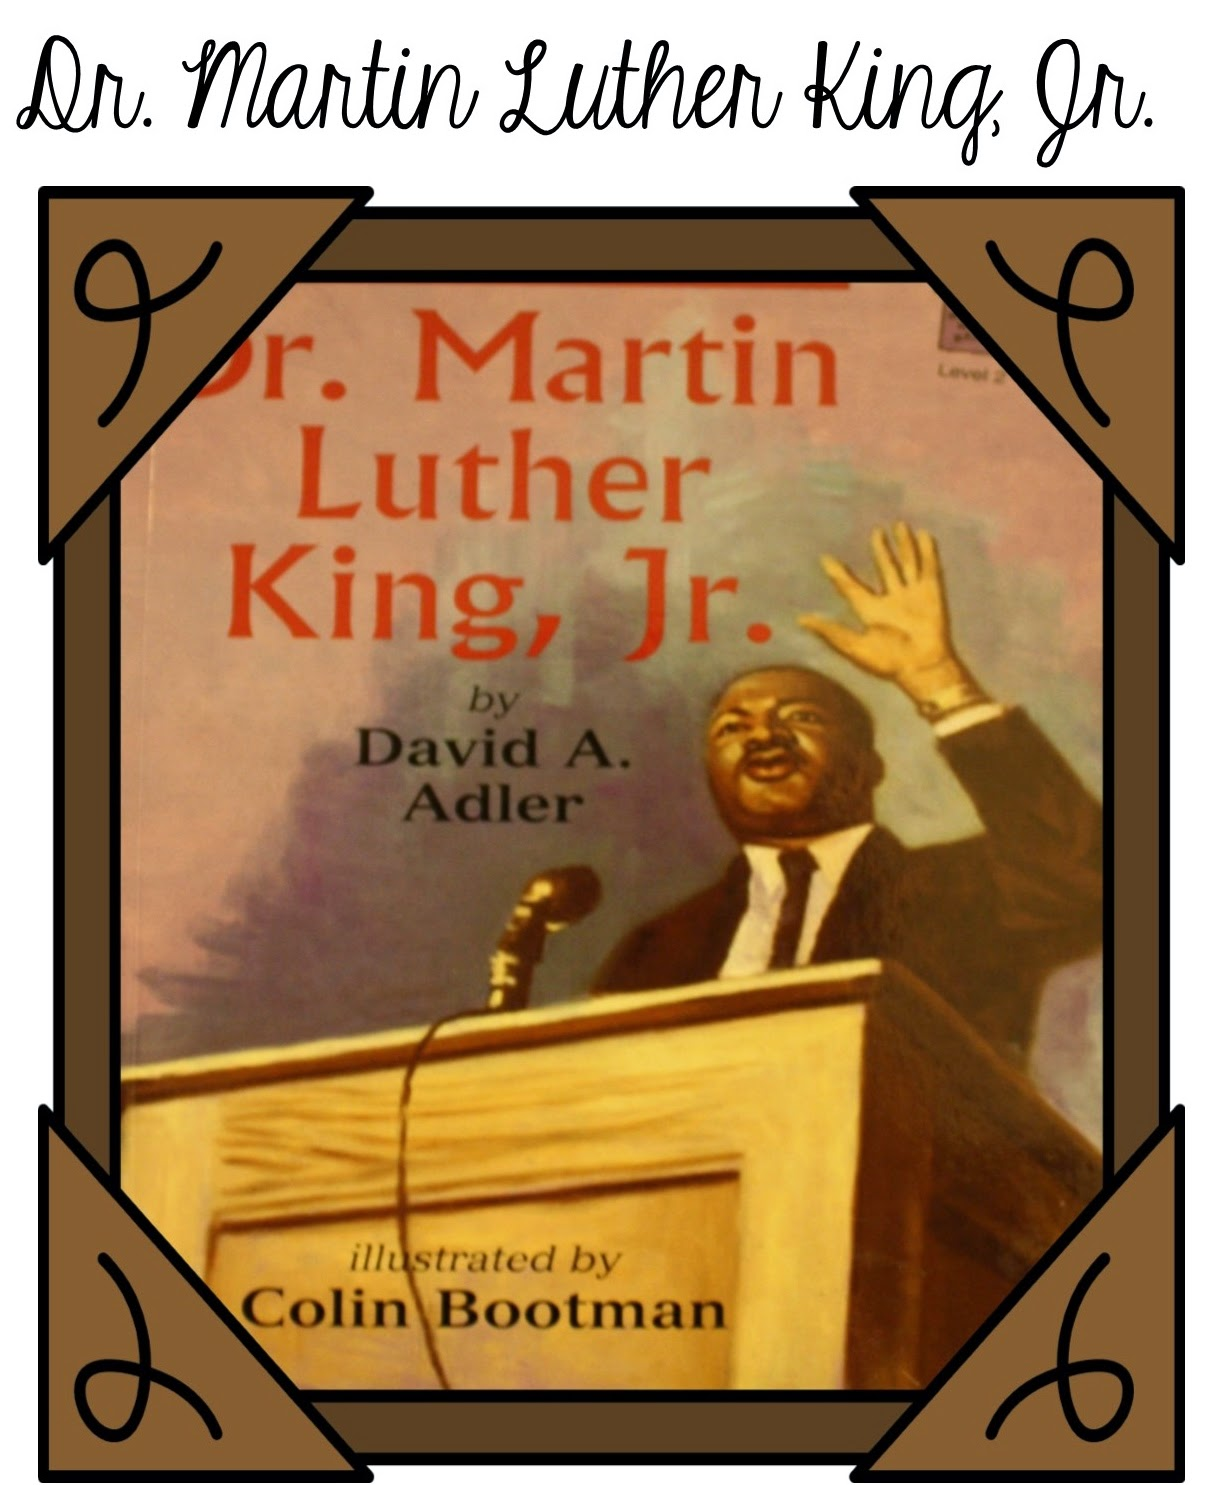 http://www.amazon.com/Martin-Luther-Holiday-House-Reader/dp/0823418030/ref=sr_1_2?ie=UTF8&qid=1421621945&sr=8-2&keywords=dr.+martin+luther+king+jr+by+david+adler